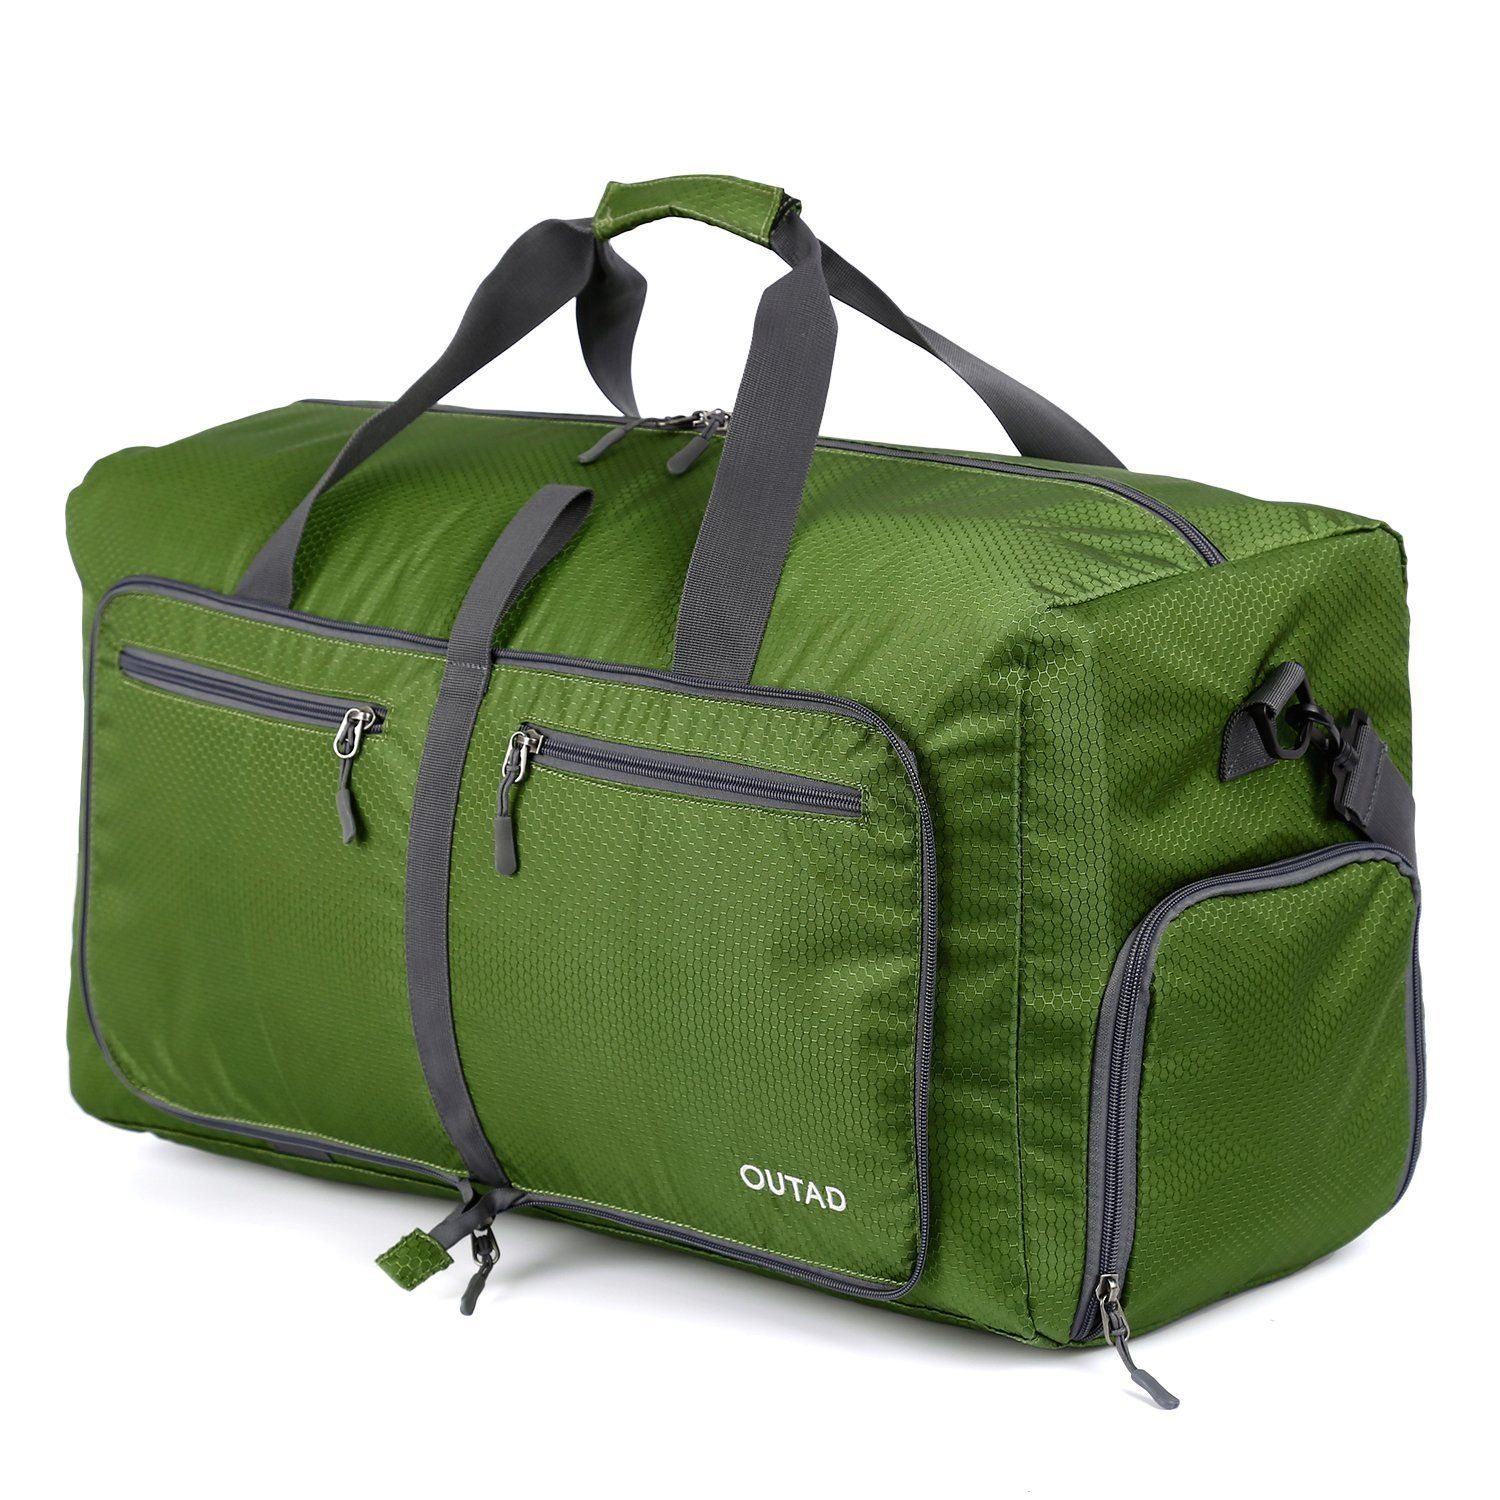 424d1047f79d Bag · OUTAD Foldable Travel Sports Duffel ...